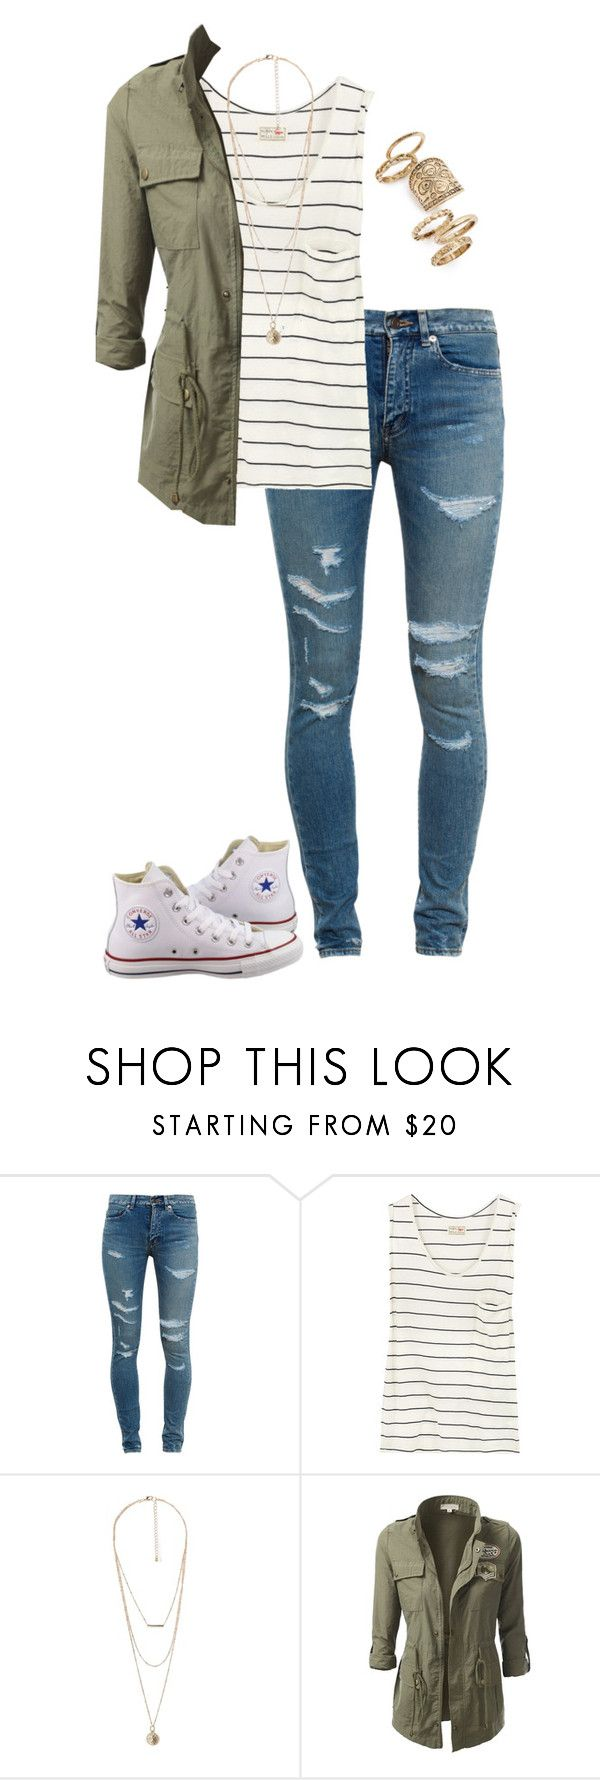 Corner Outfit Ideas Babies Outfit Ideas Whole New By Liked On Polyvore Featuring Yvessaint Laurent Academy Rocks Images On Pinterest Feminine Family